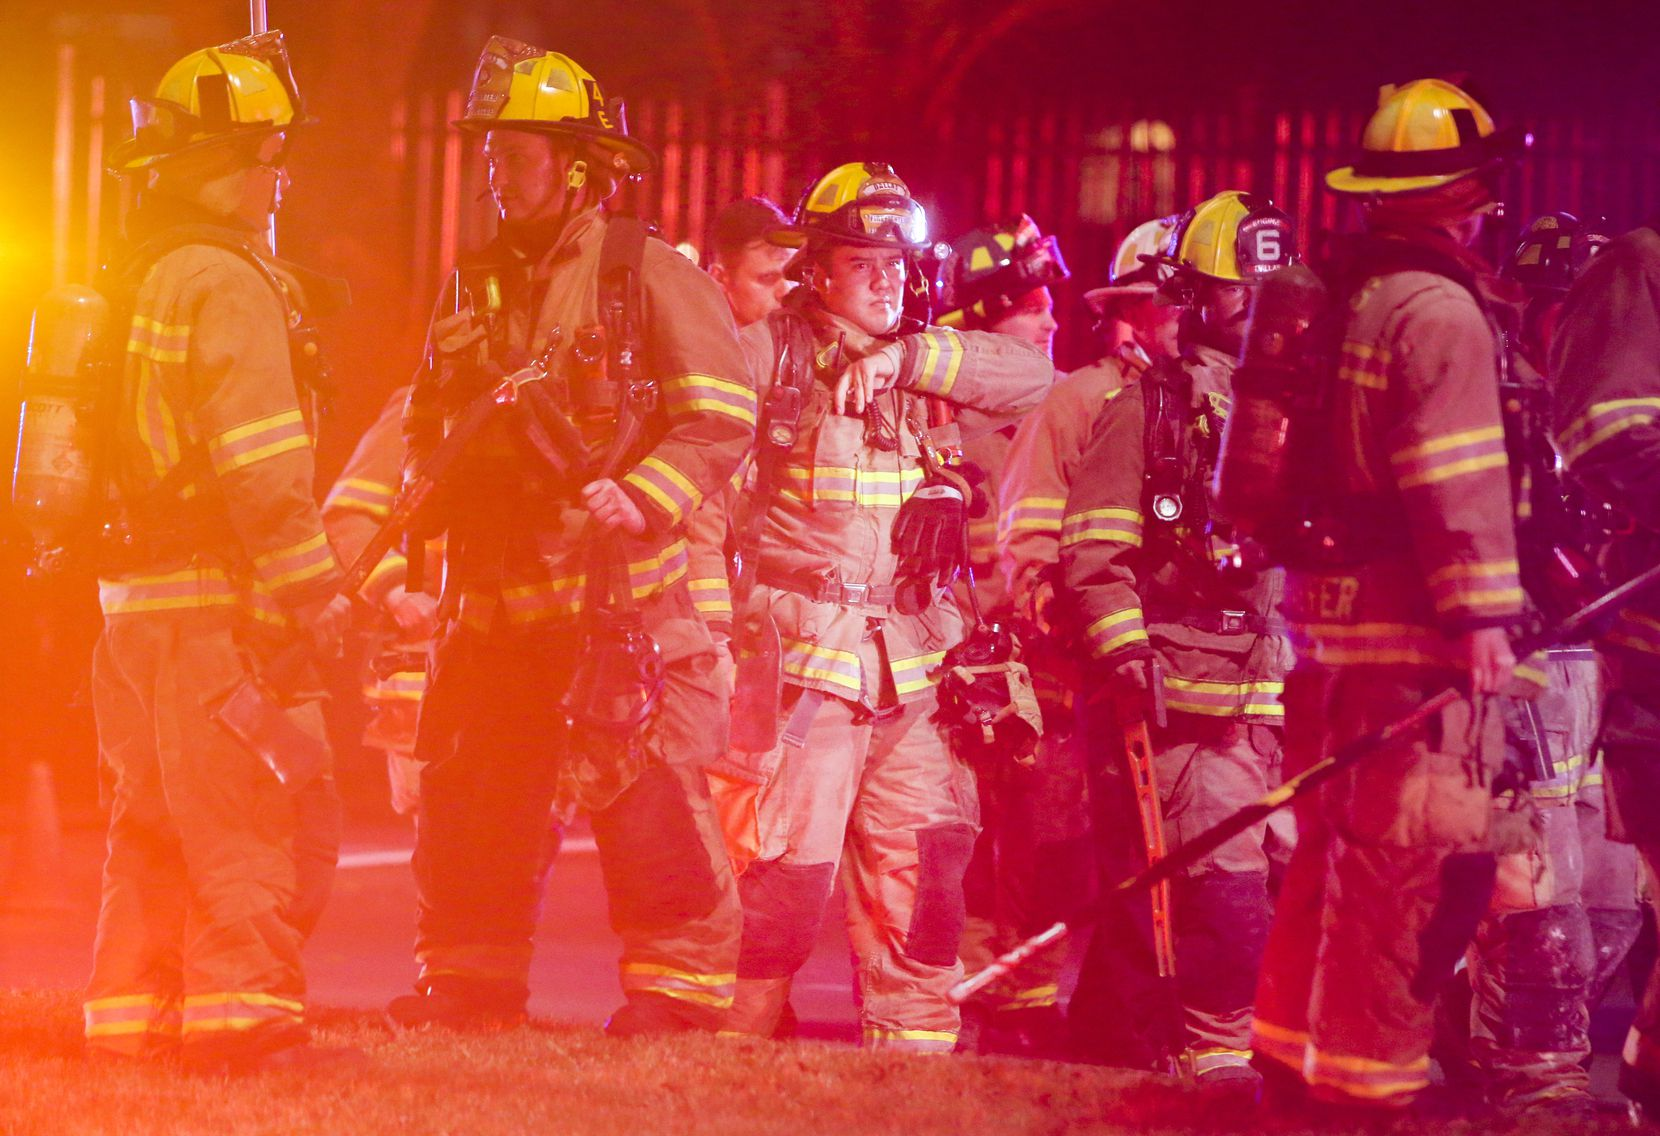 Emergency personnel work at the scene of an underground electrical vault fire in the 300 block of South Cesar Chavez Boulevard, between Jackson and Canton streets on Saturday, Feb. 2, 2019 in Dallas.